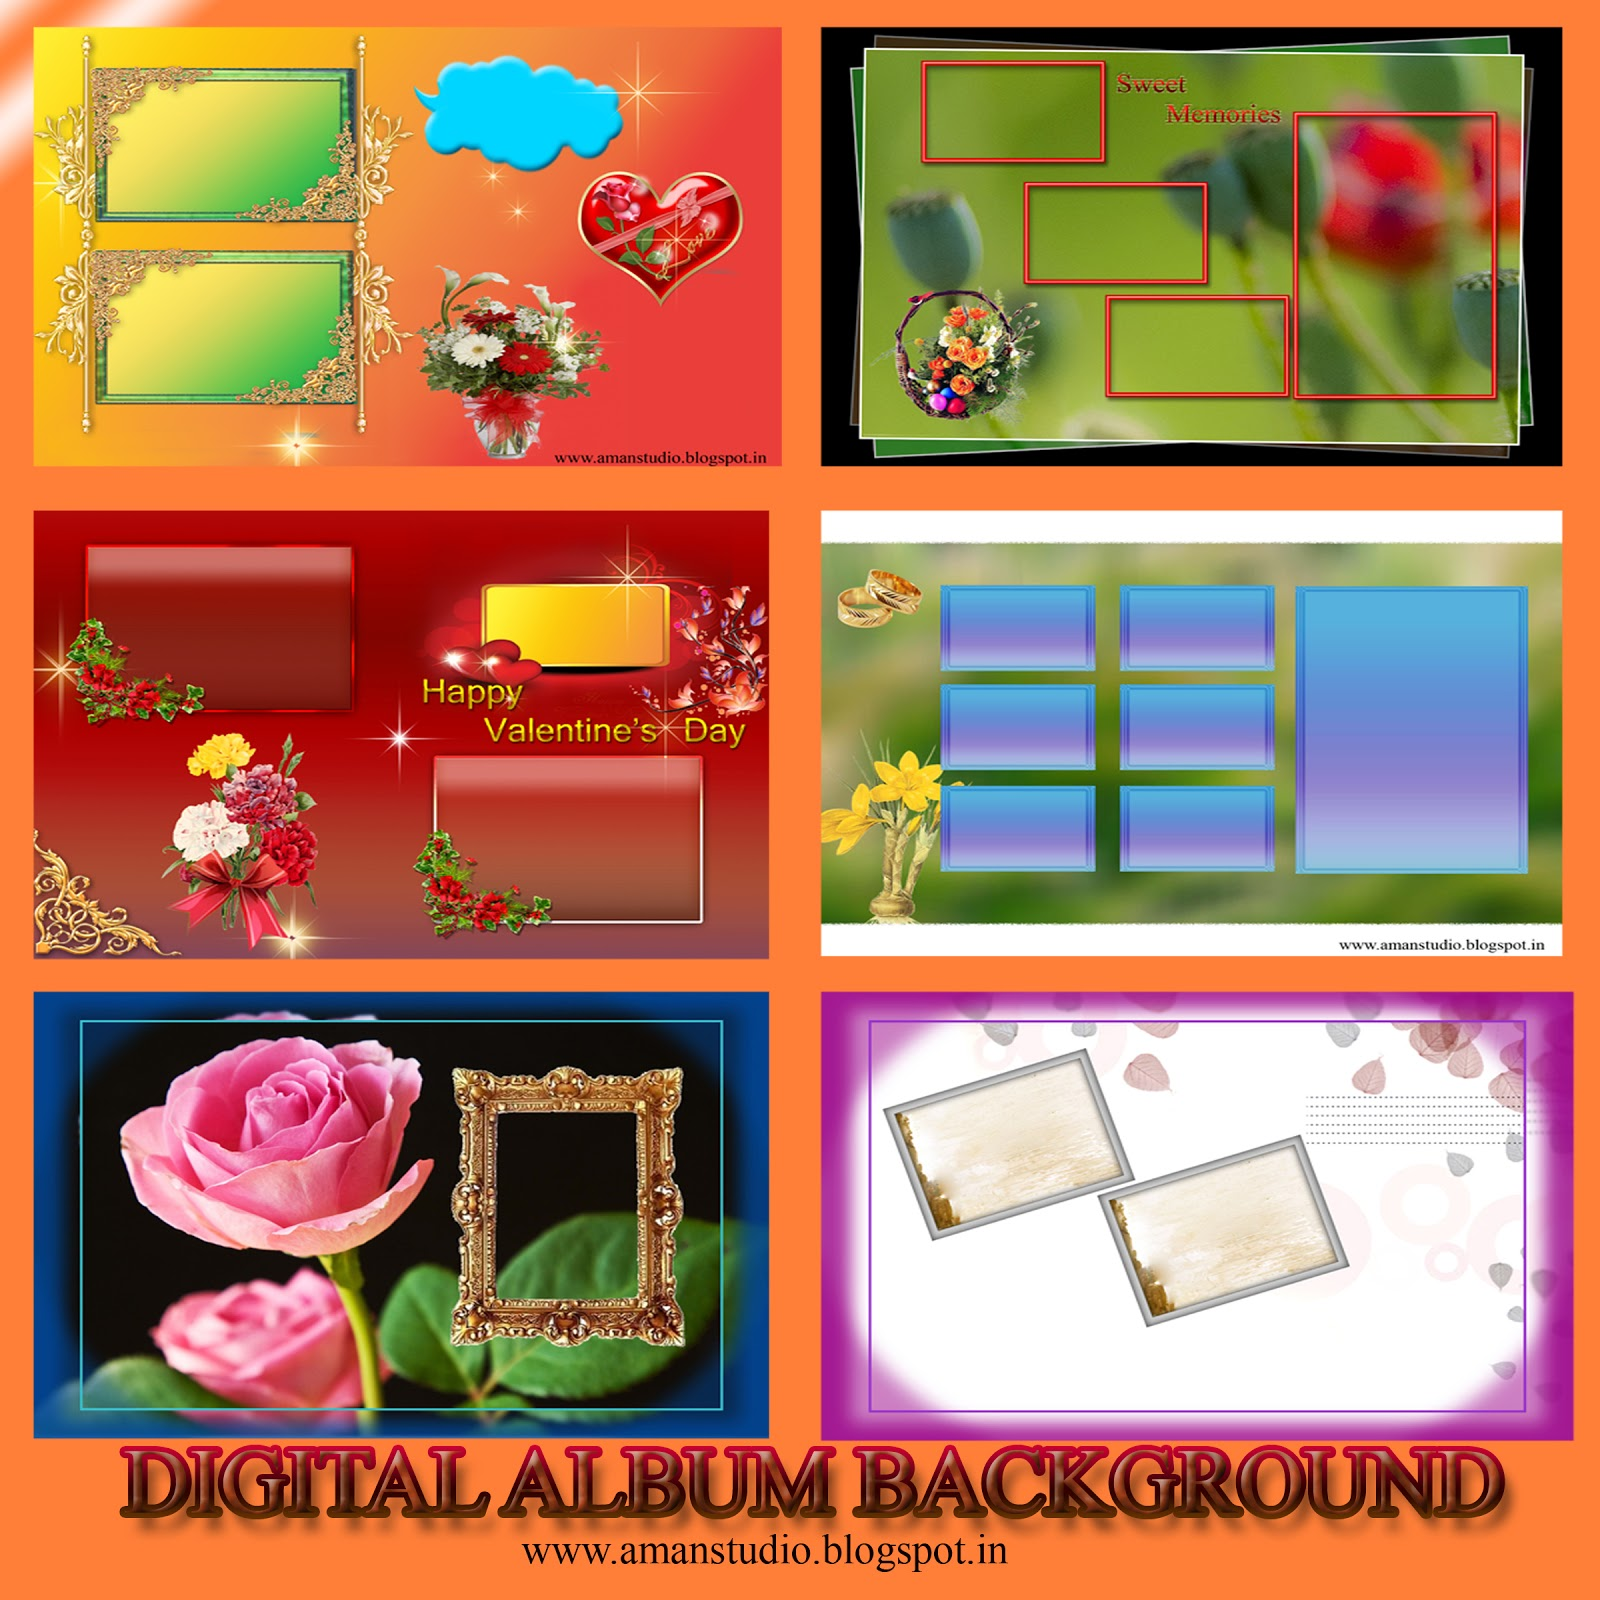 digital album background psd jpeg 1920x1200 300 dpi download free